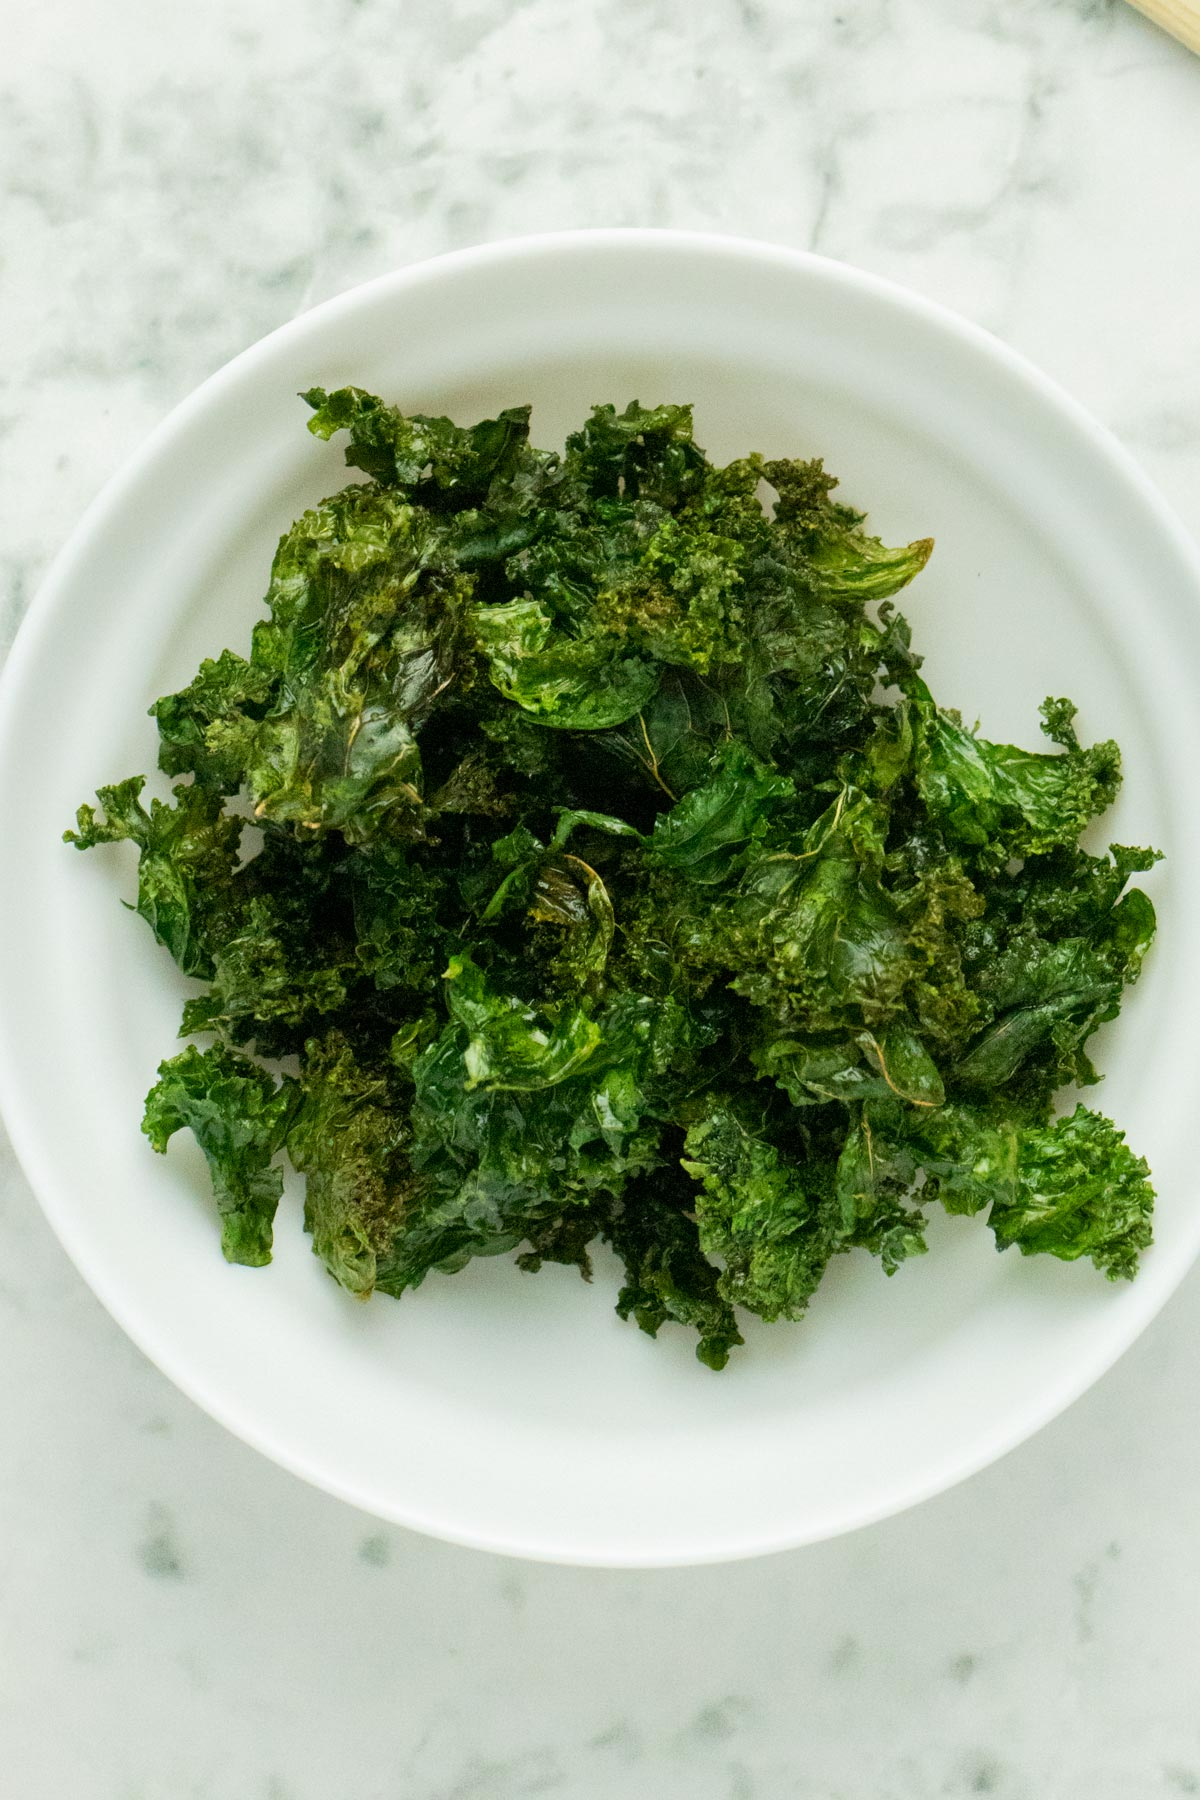 kale chips in a bowl before seasoning